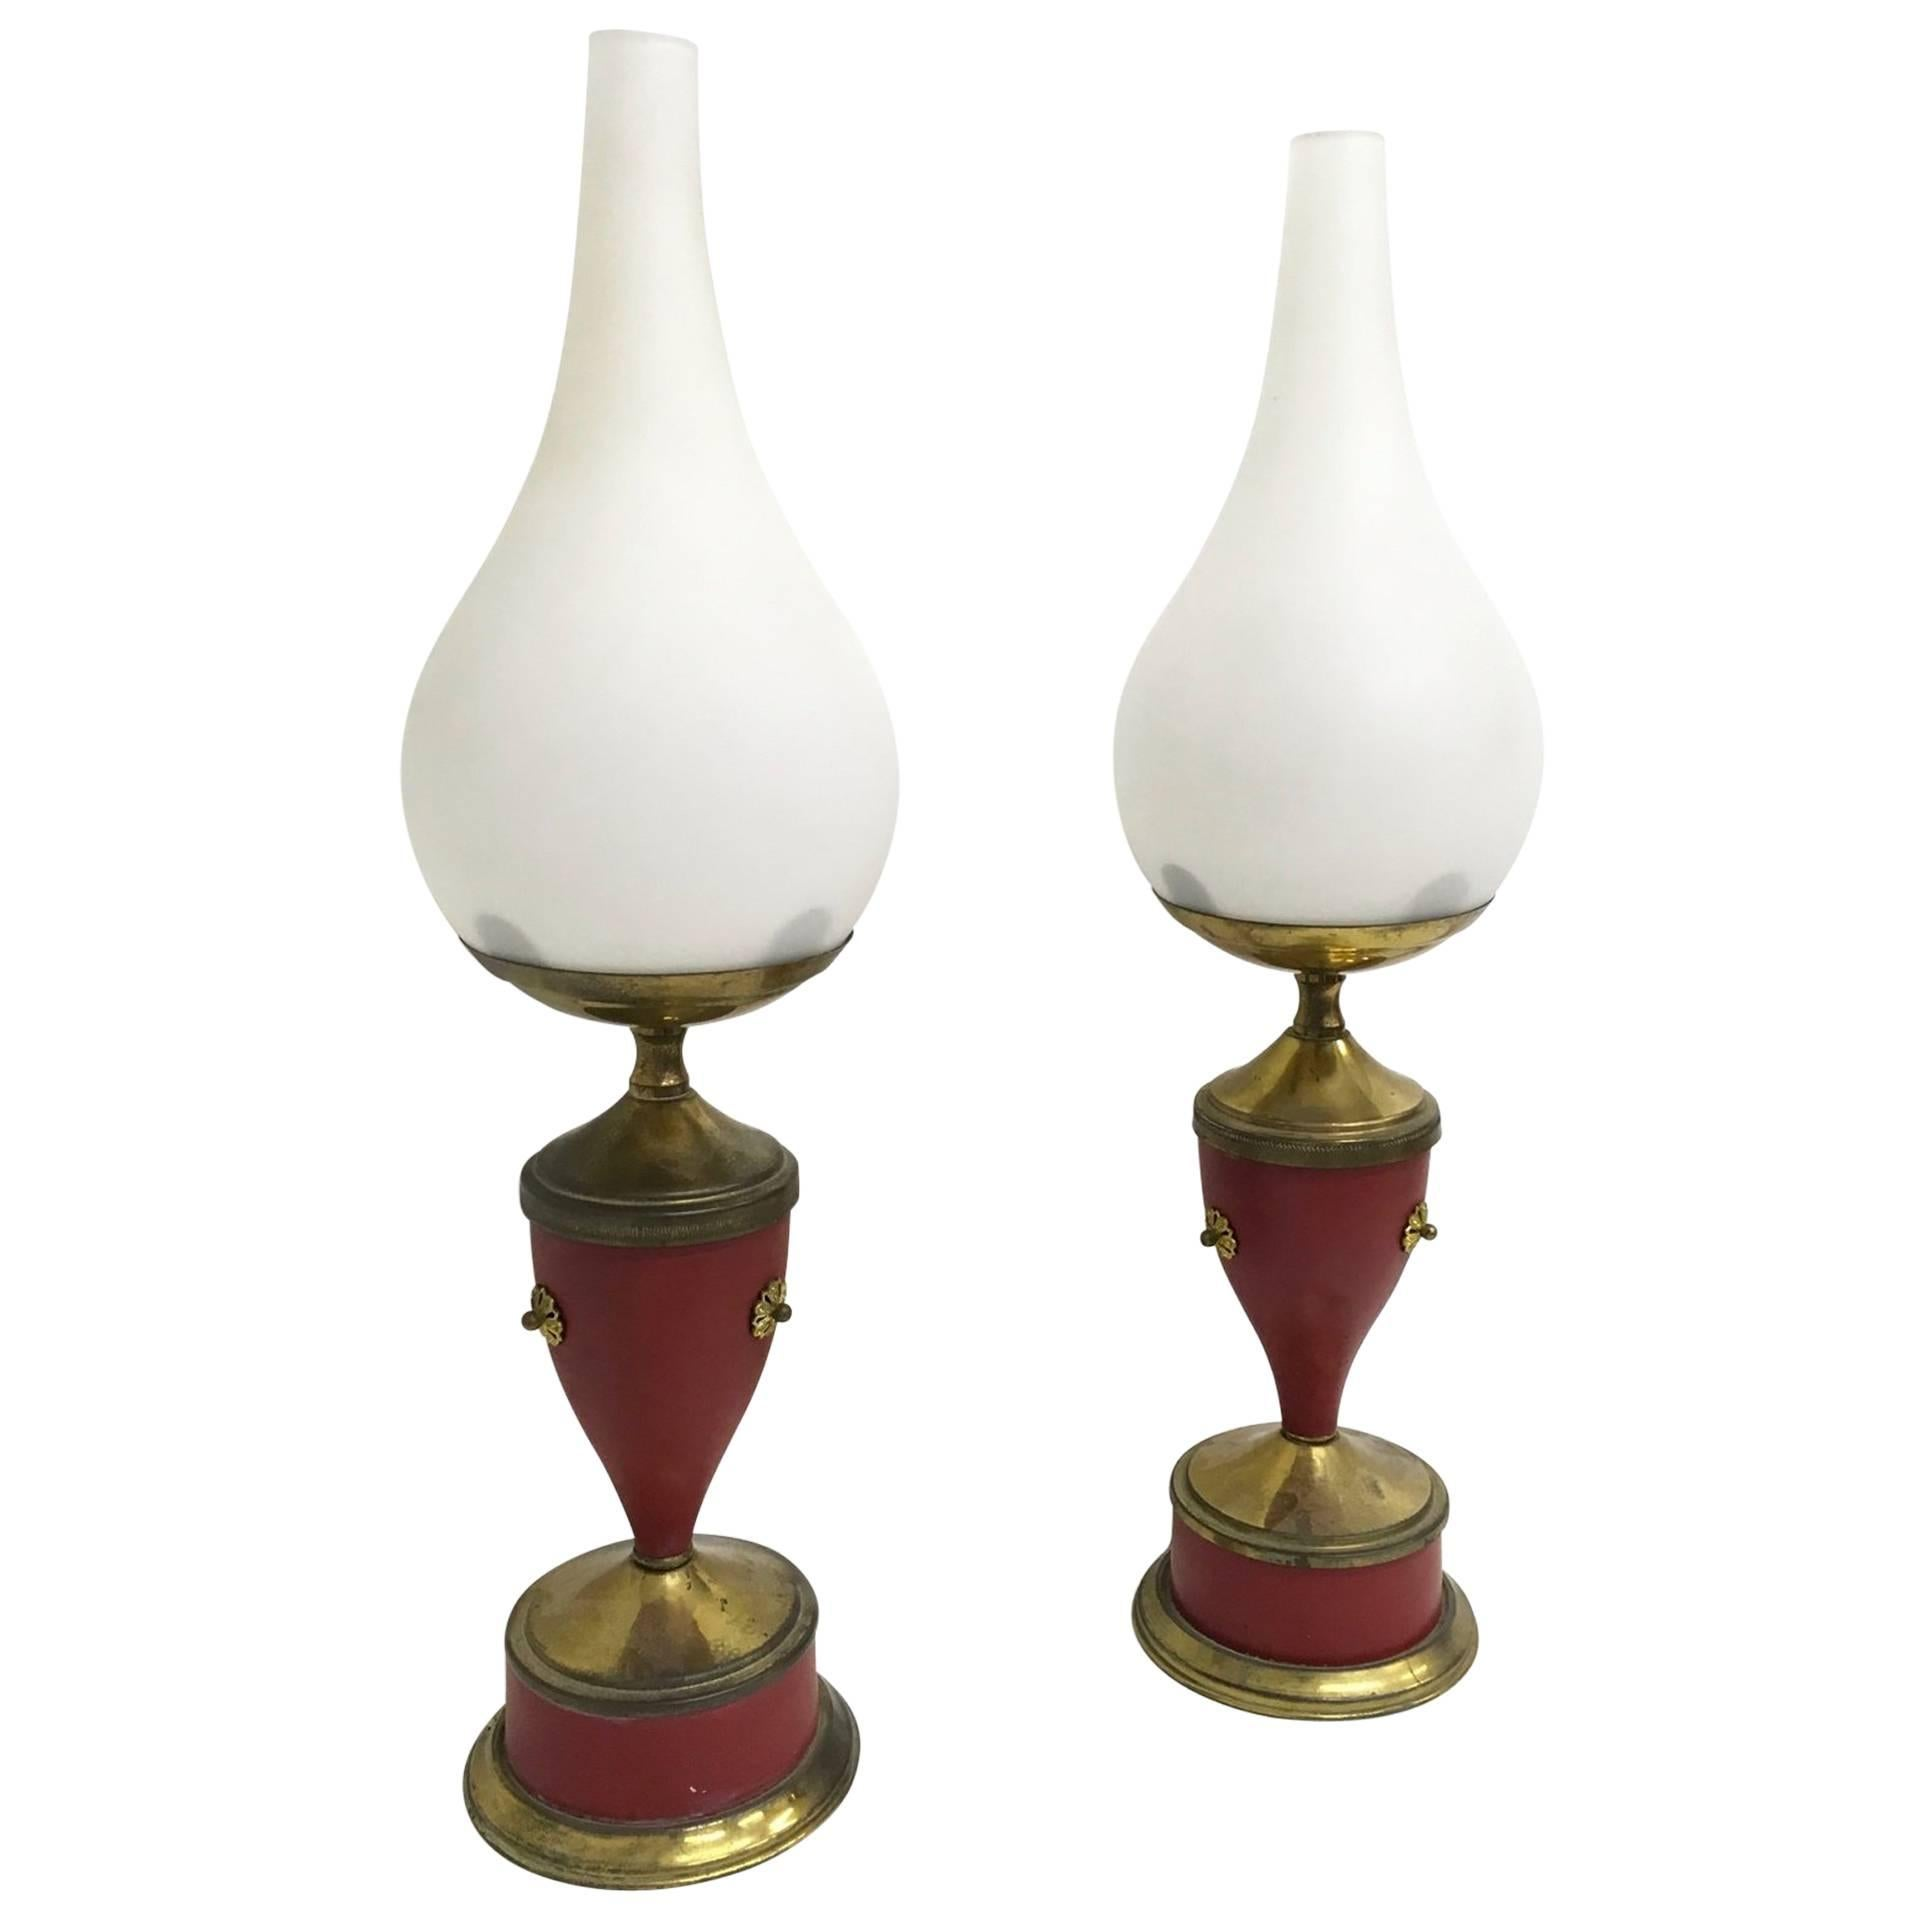 Pair of Wonderful Table Lamps, Italy, 1950s